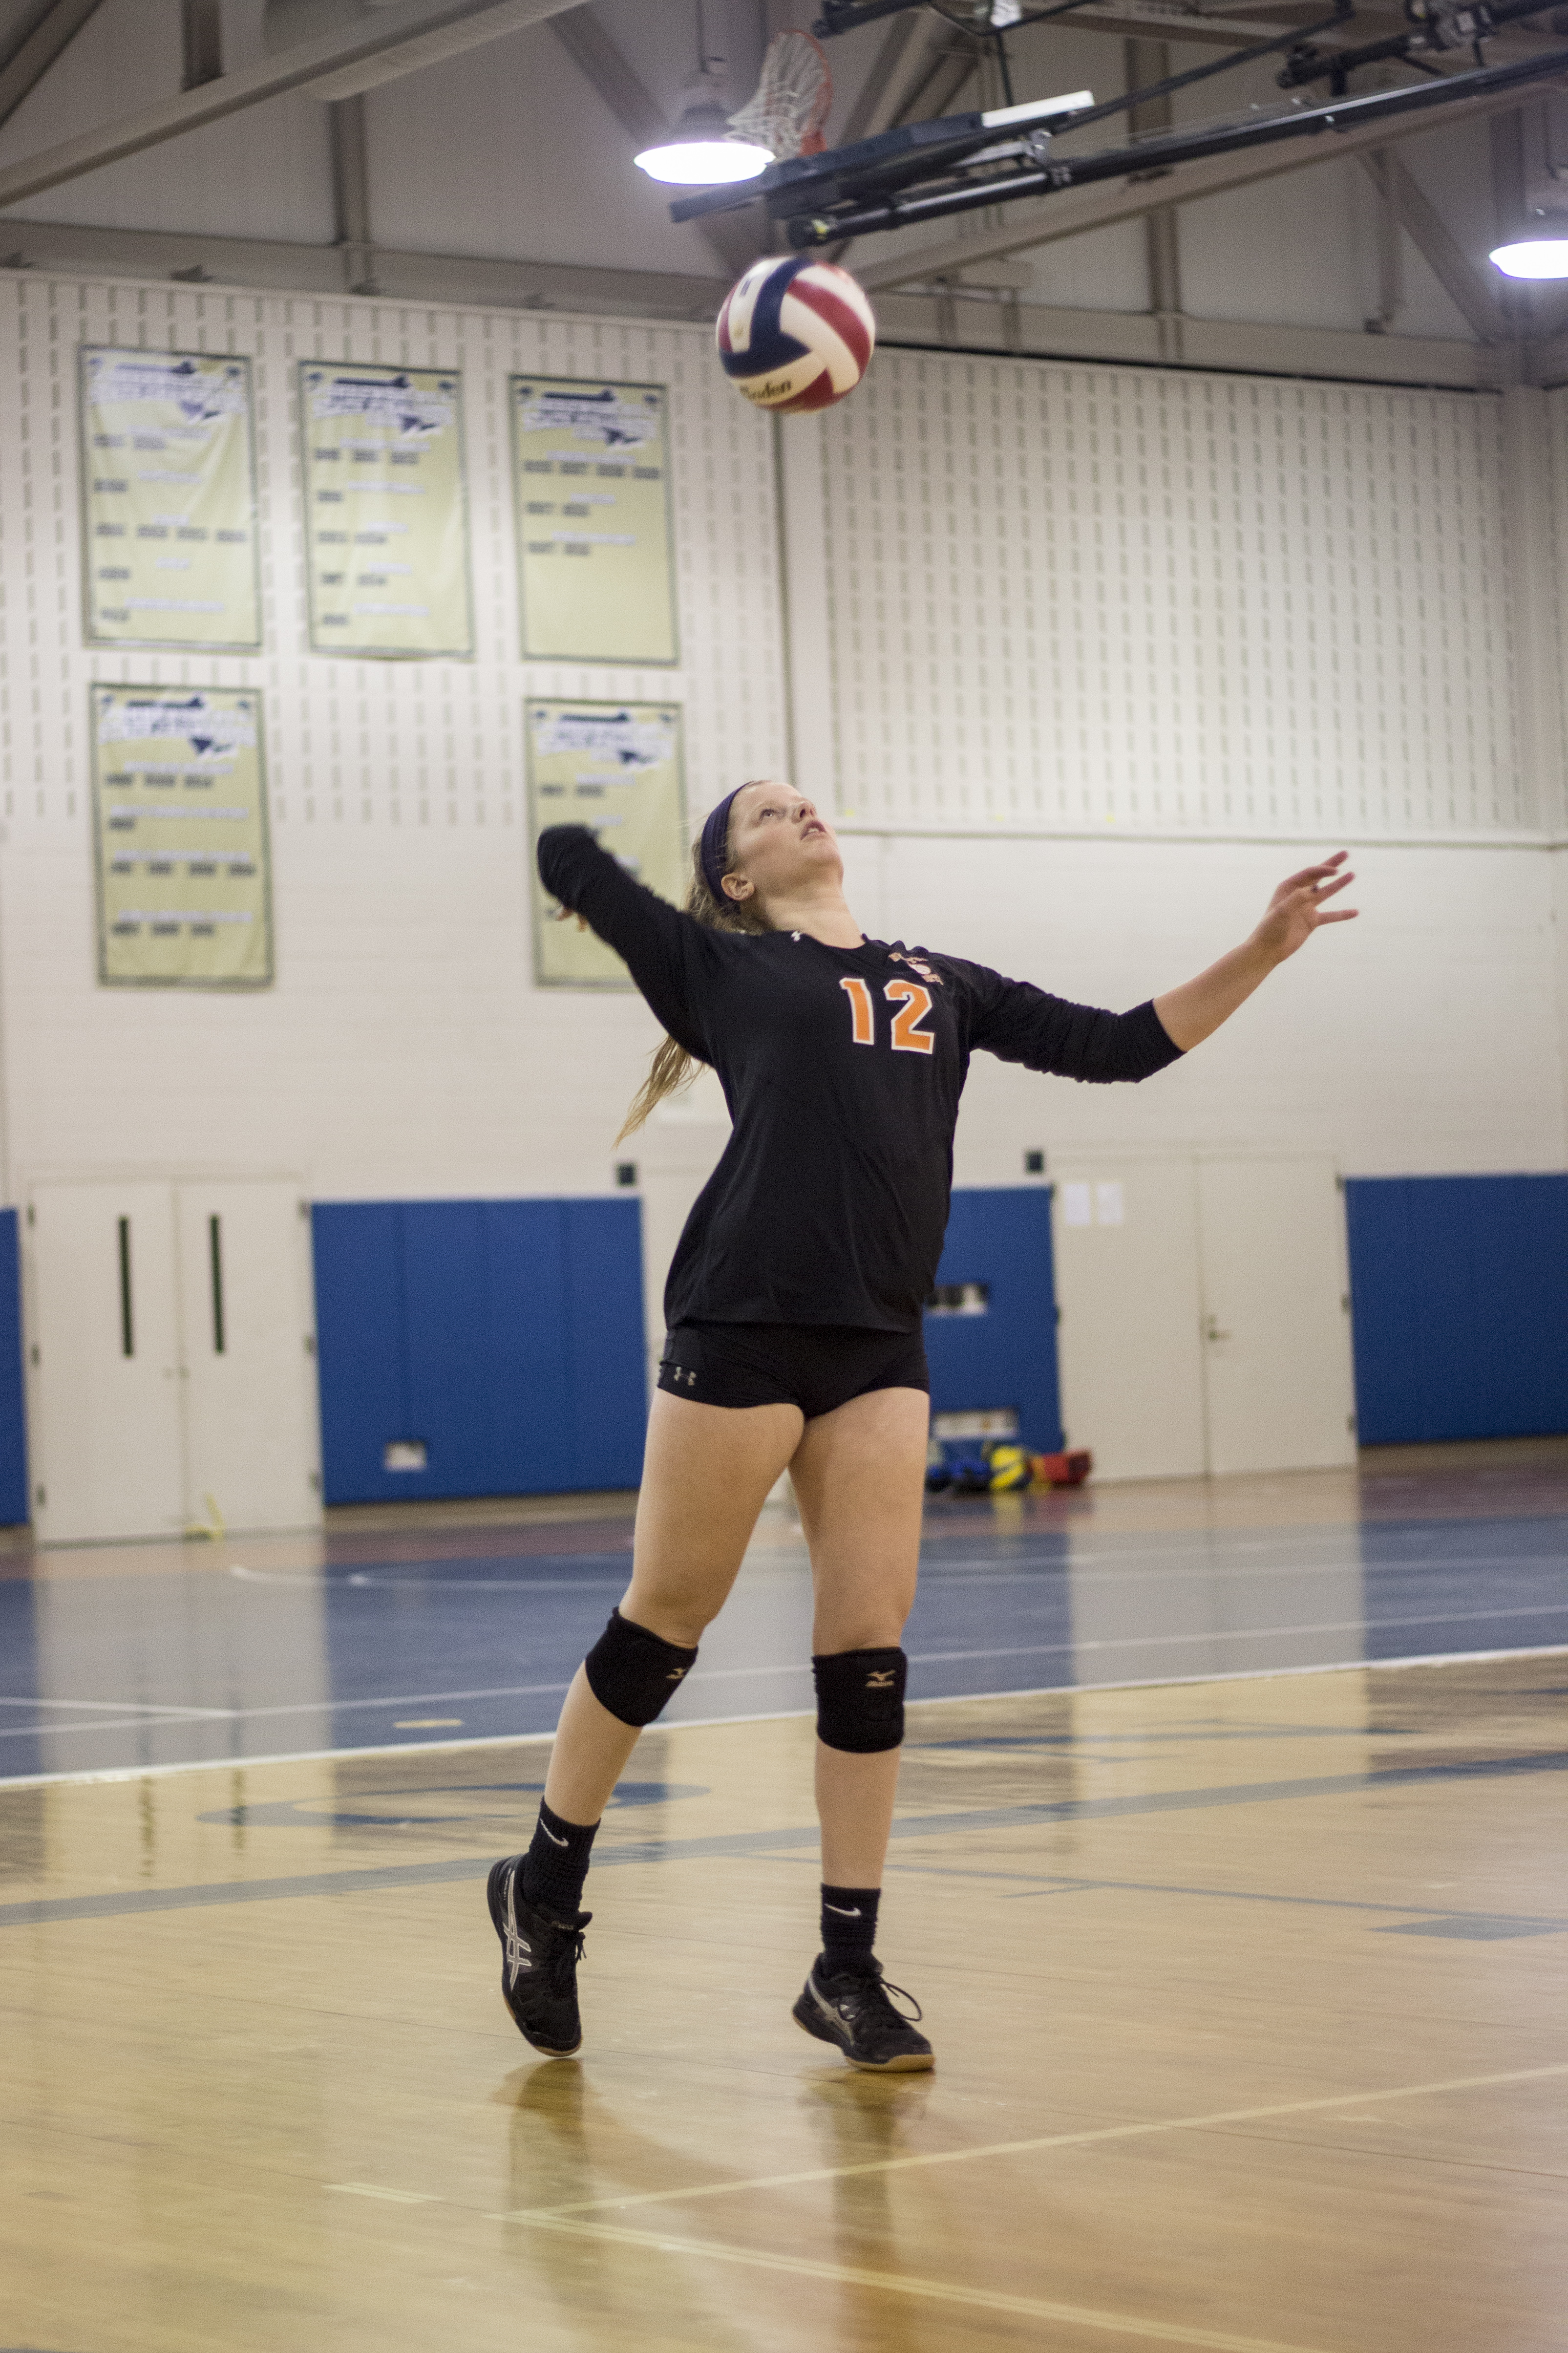 Girls' volleyball season ends in loss to Andover – The ...